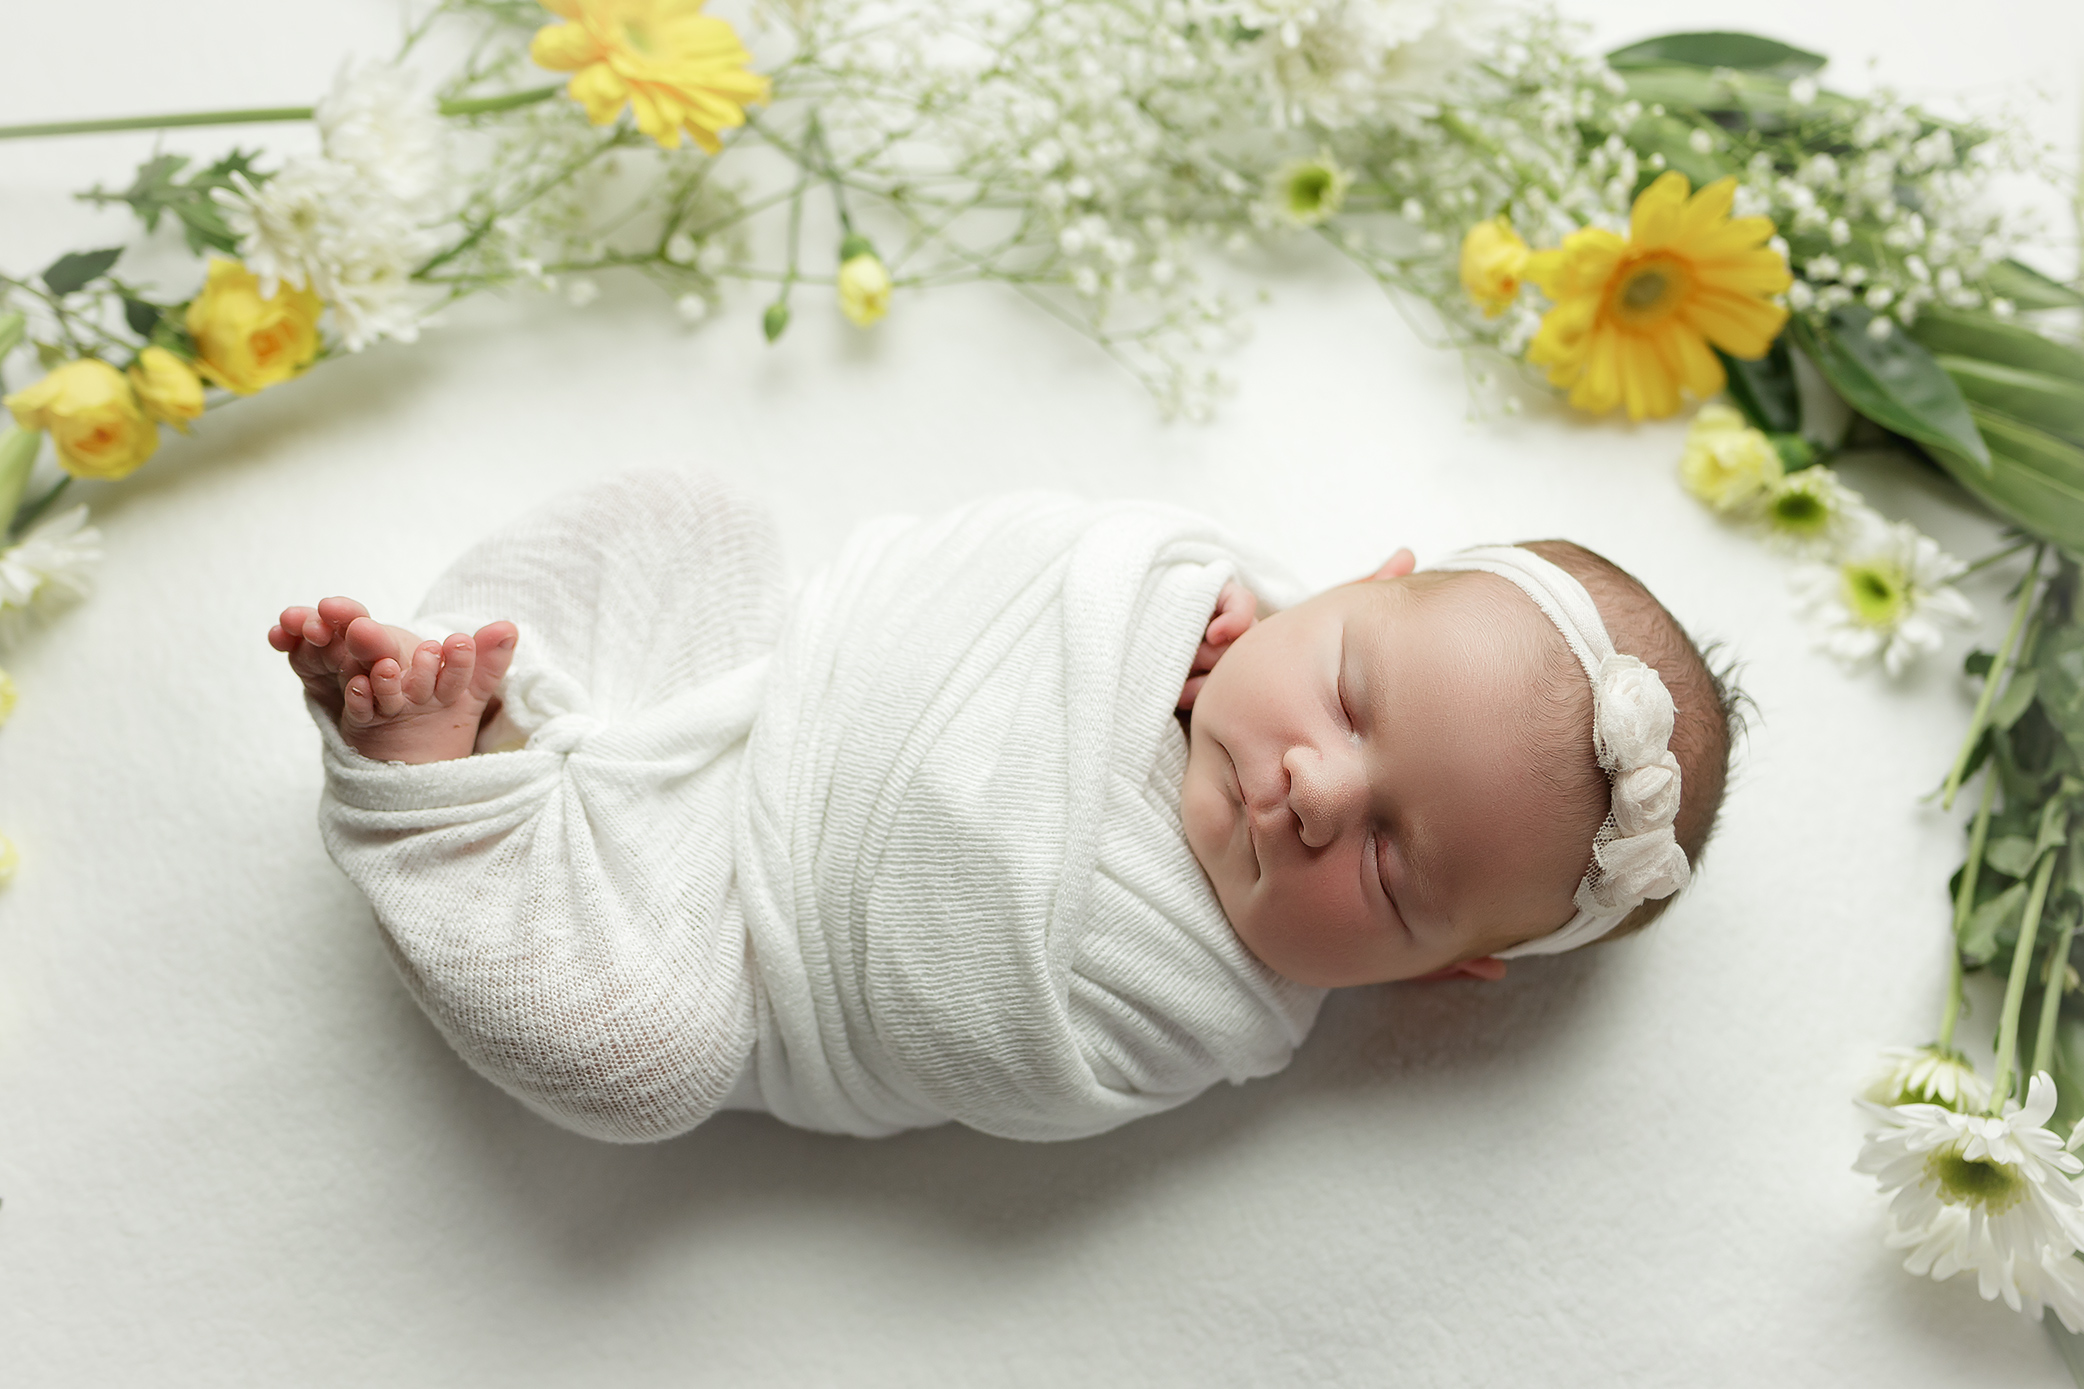 Arwen-Meyer-Carrell-Newborn-Session-1452.jpg